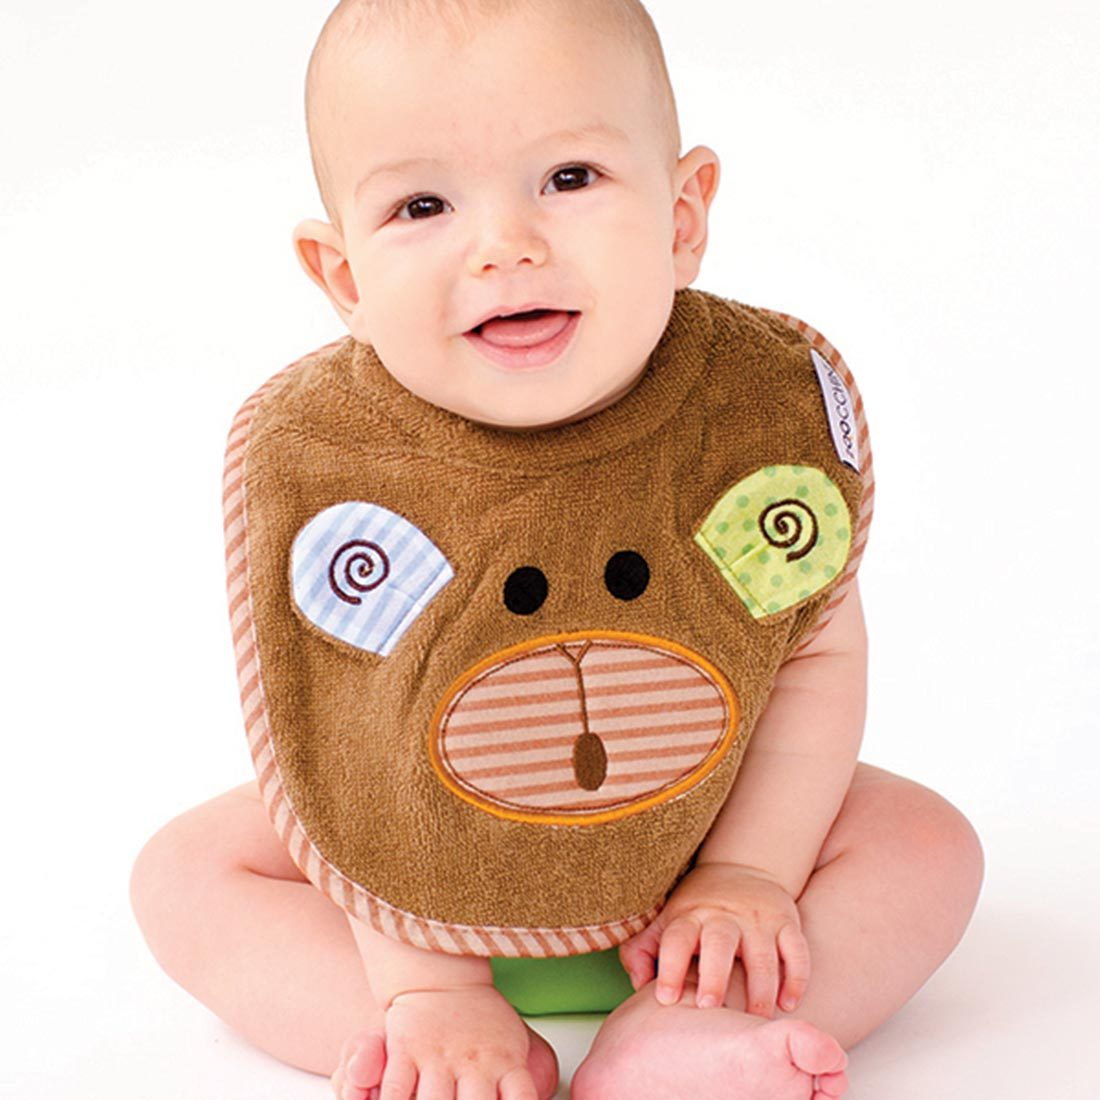 ZOOCCHINI Baby Snow Terry Feeding Bib - Max the Monkey